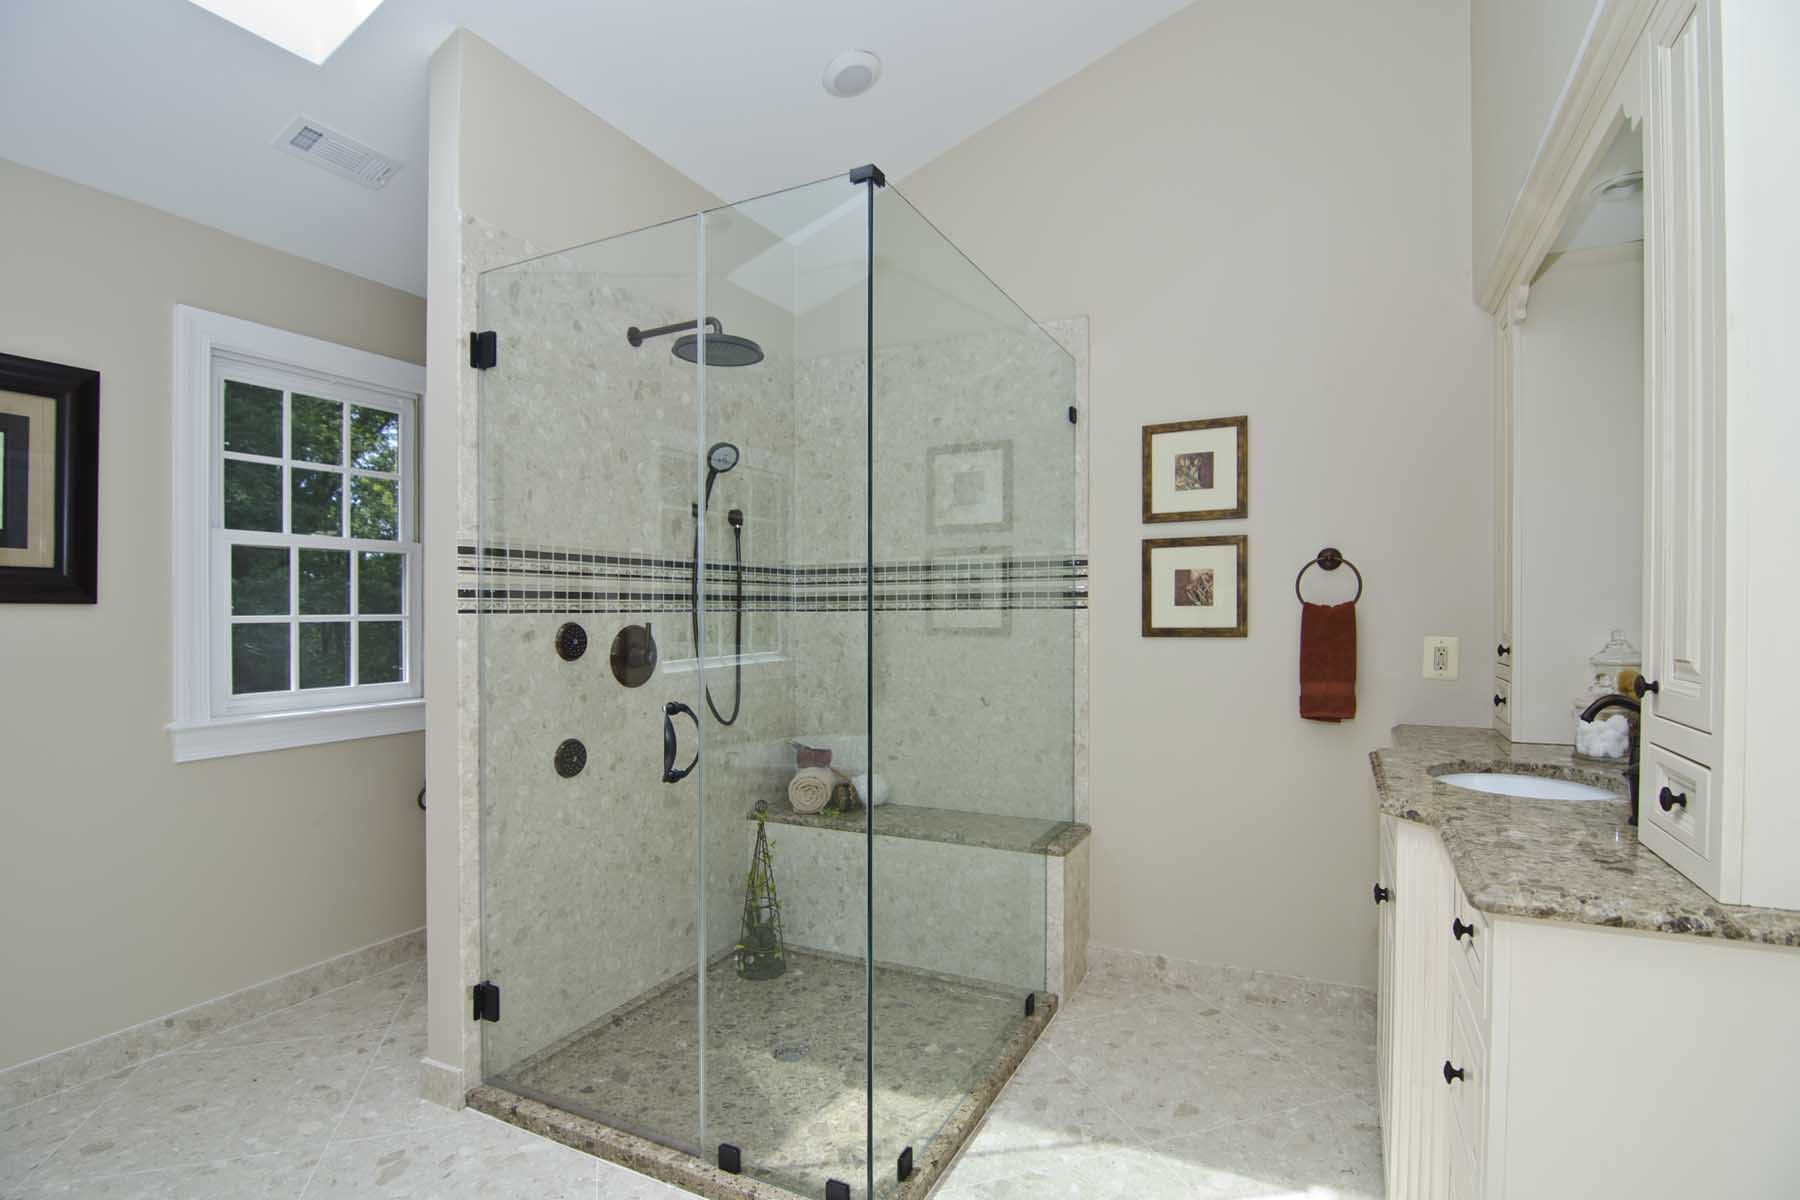 Groutless shower walls and floors